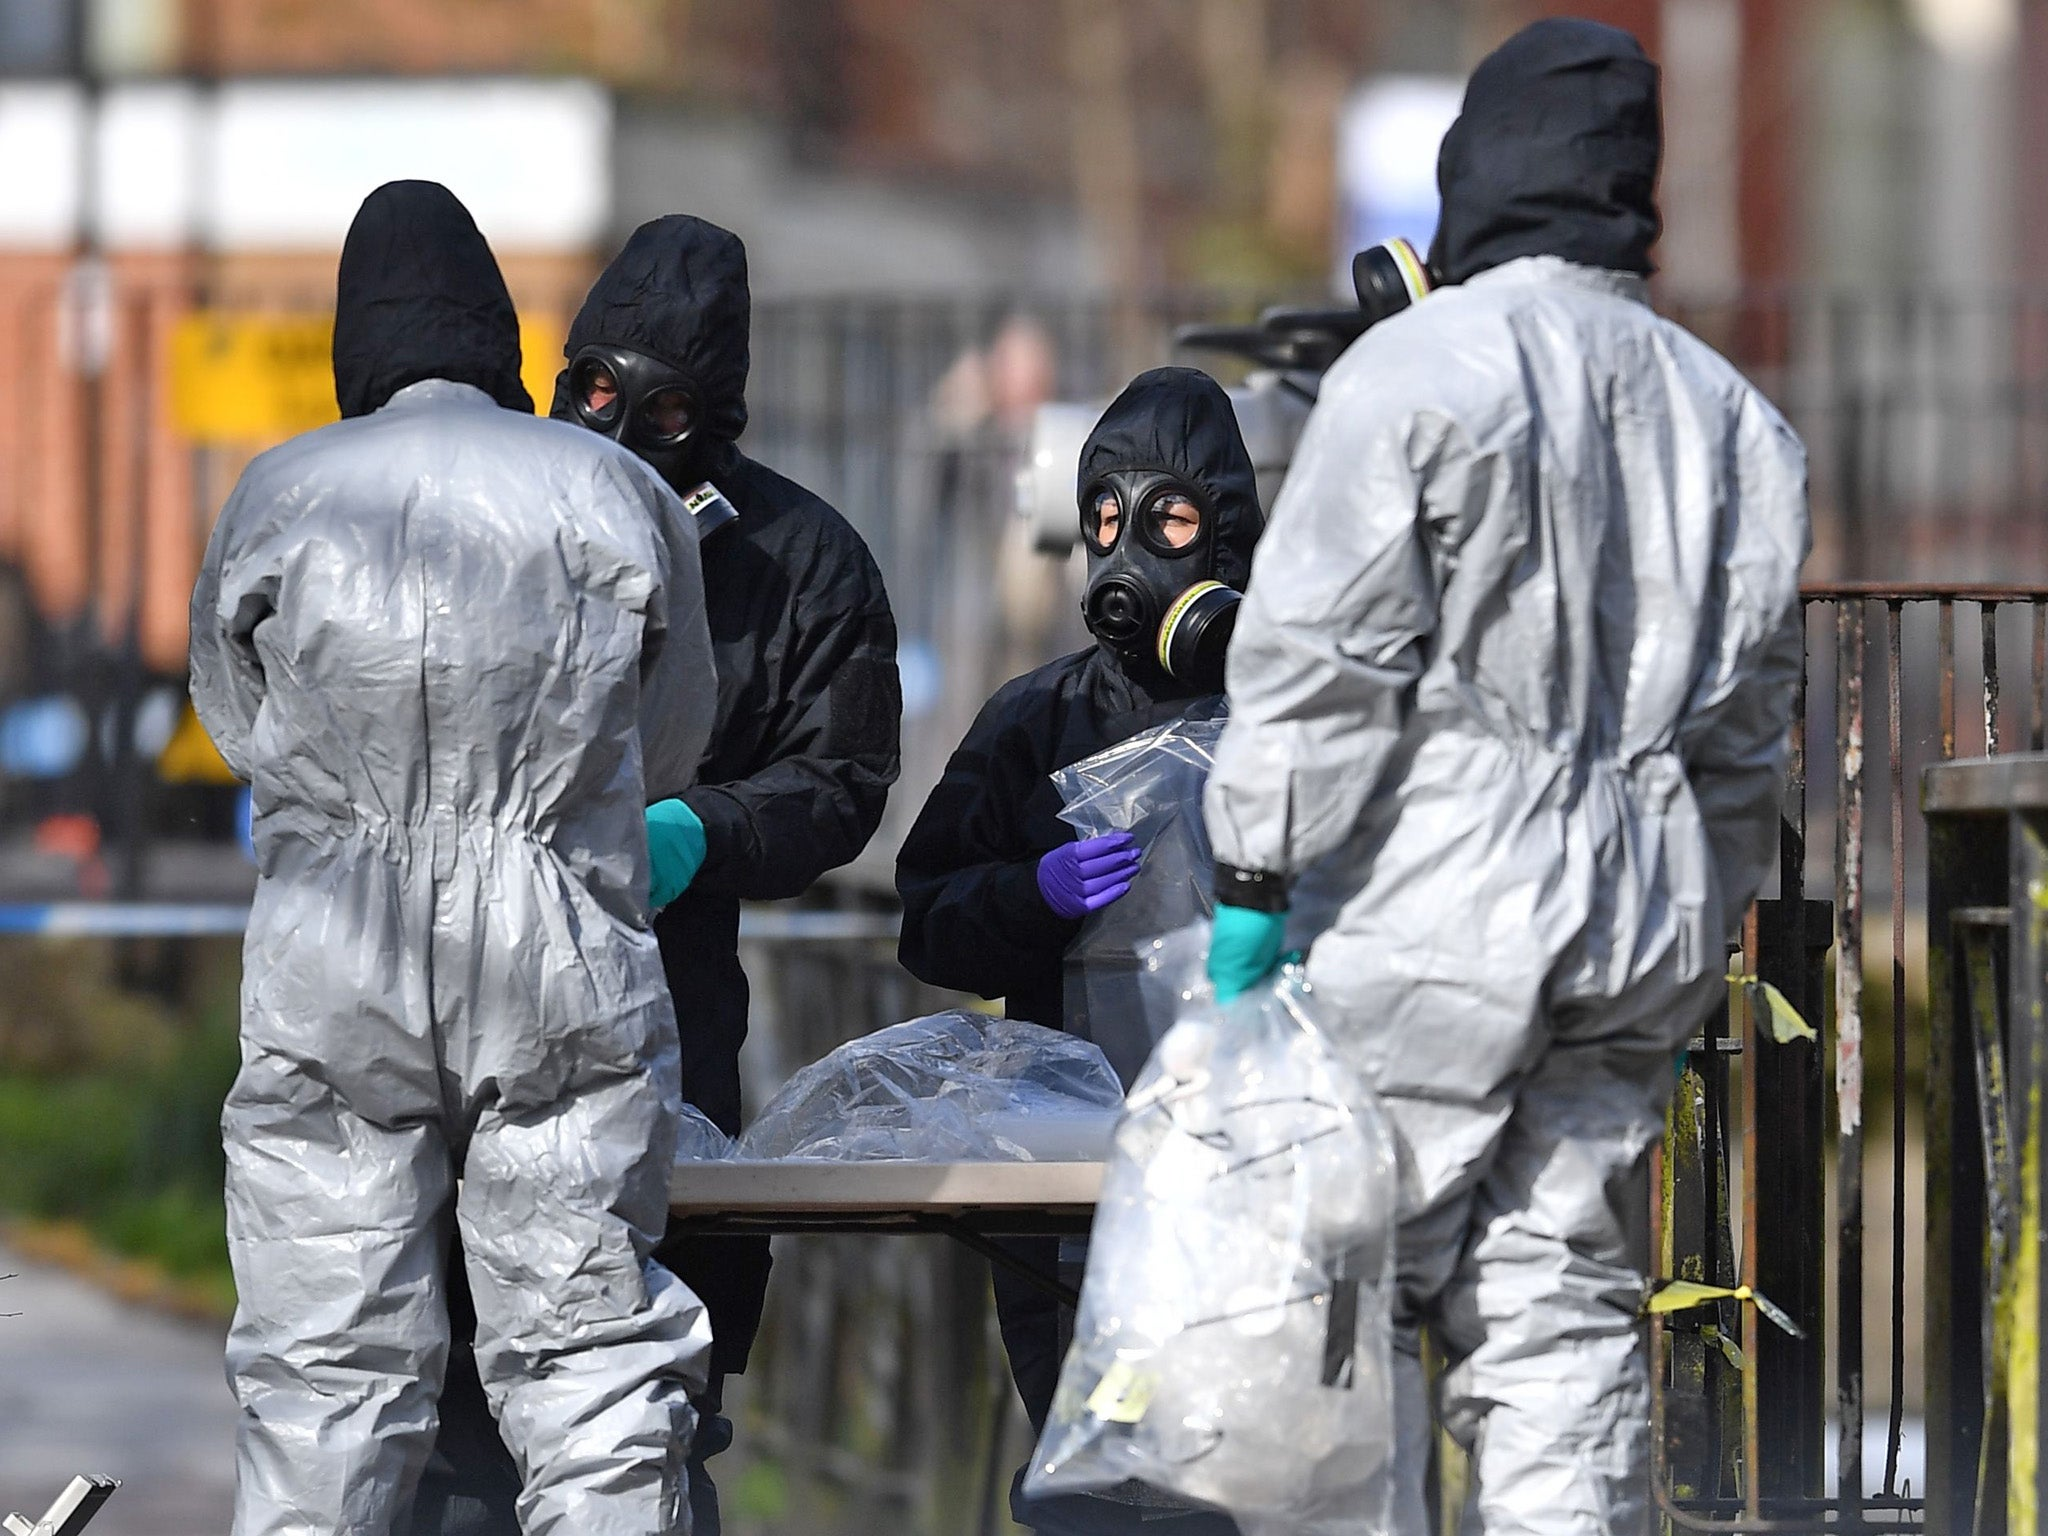 Nerve agent used to poison Sergei and Yulia Skripal was delivered in 'liquid form', says Defra